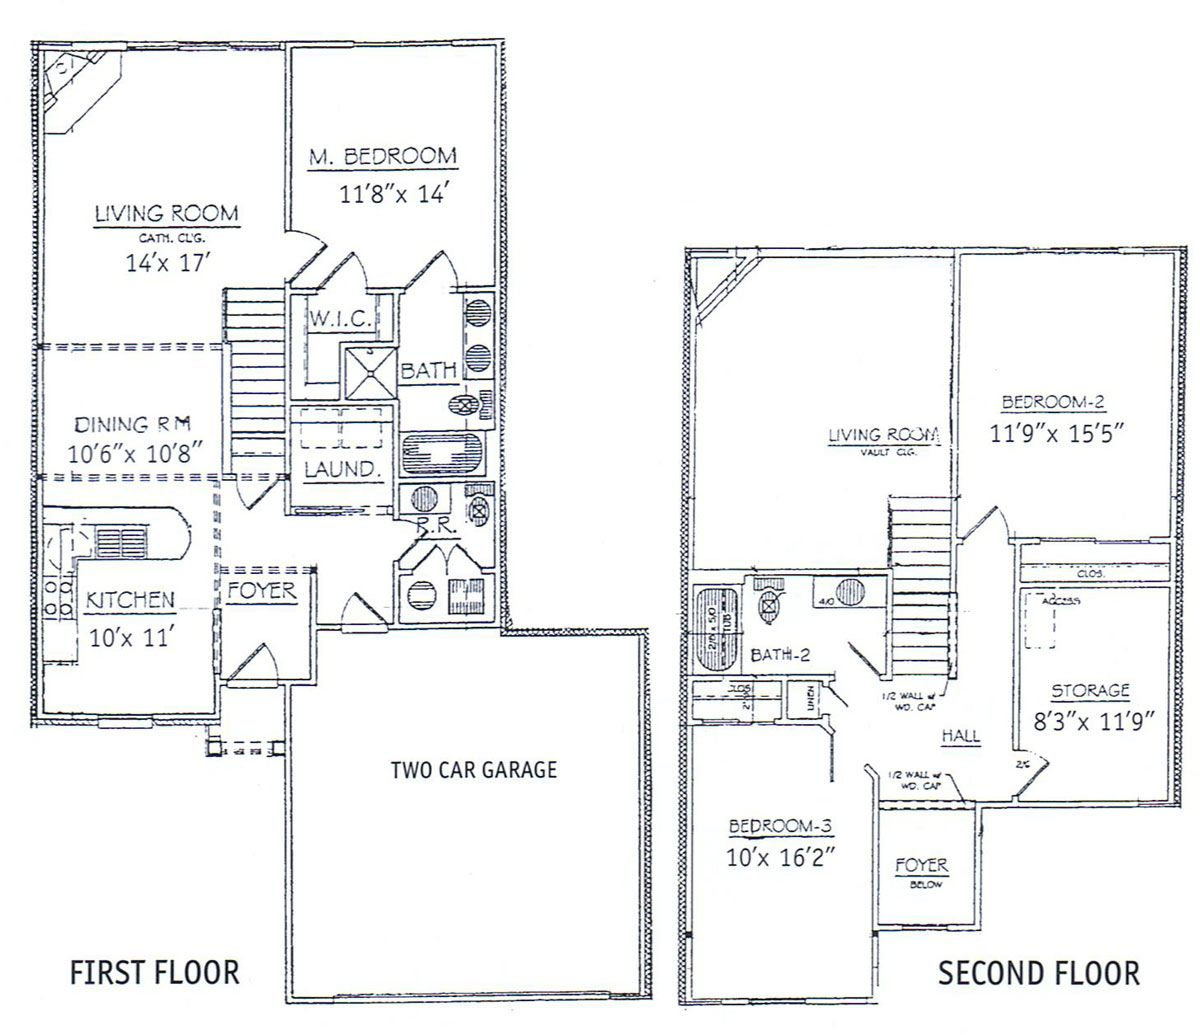 Beautiful 3 Storey Townhouse Floor Plans Part - 9: 3 Bedrooms Floor Plans 2 Story | ... Bdrm Basement The Two Three Bedroom